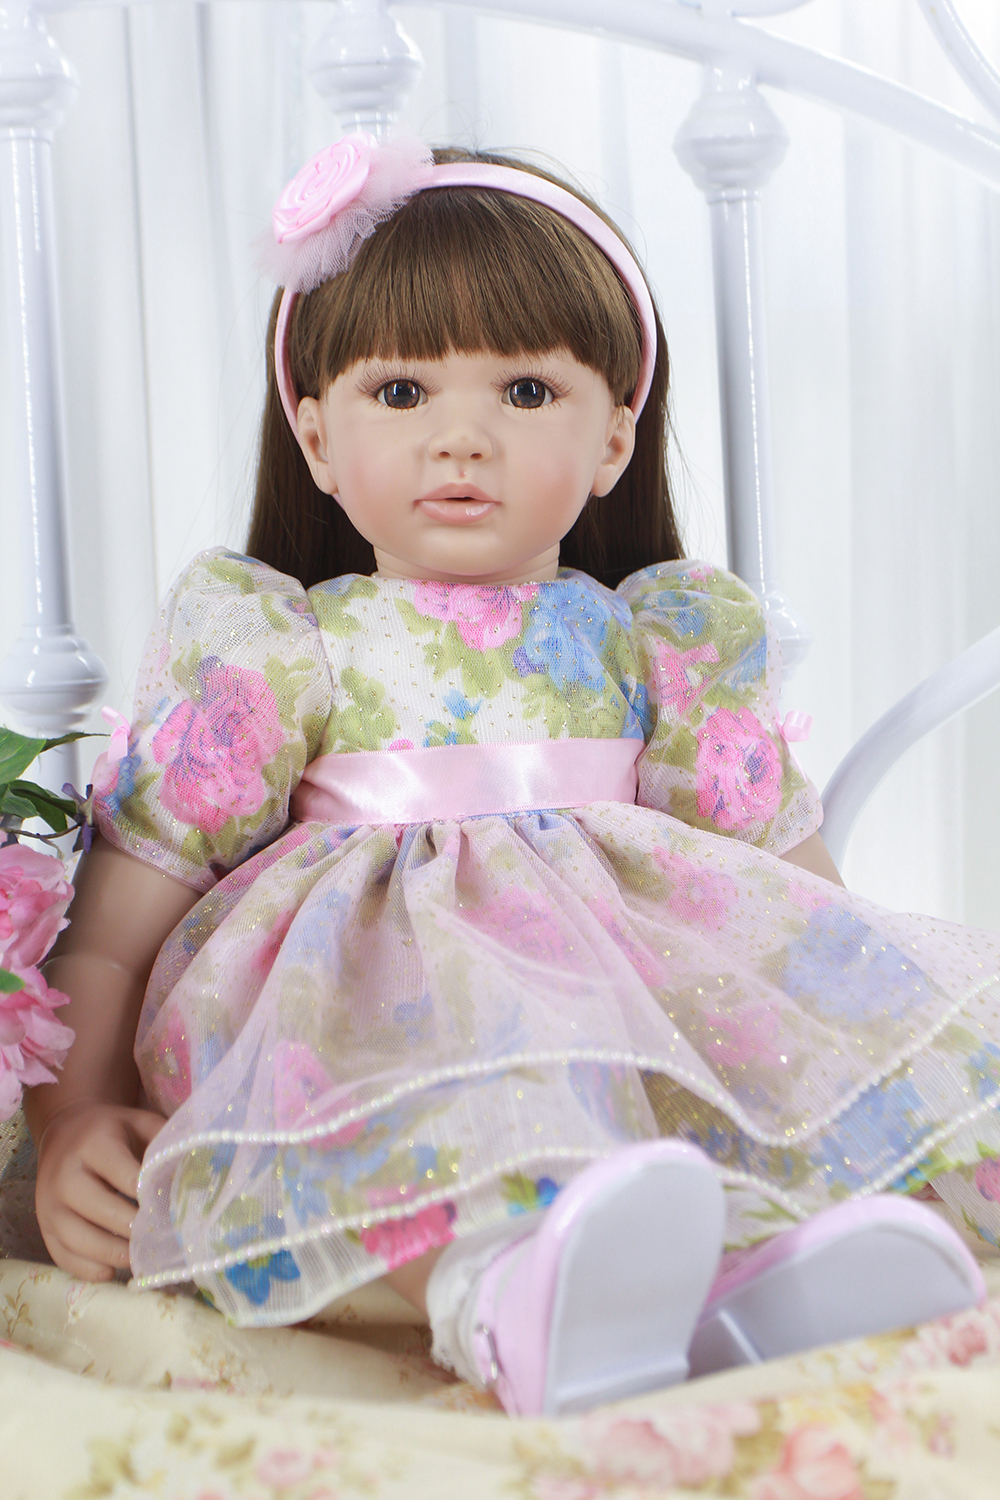 Pursue 24/60 cm New Silicone Reborn Toddler Princess Doll for Girls Best Birthday Christmas Gift Beautiful Colorful Baby Dress